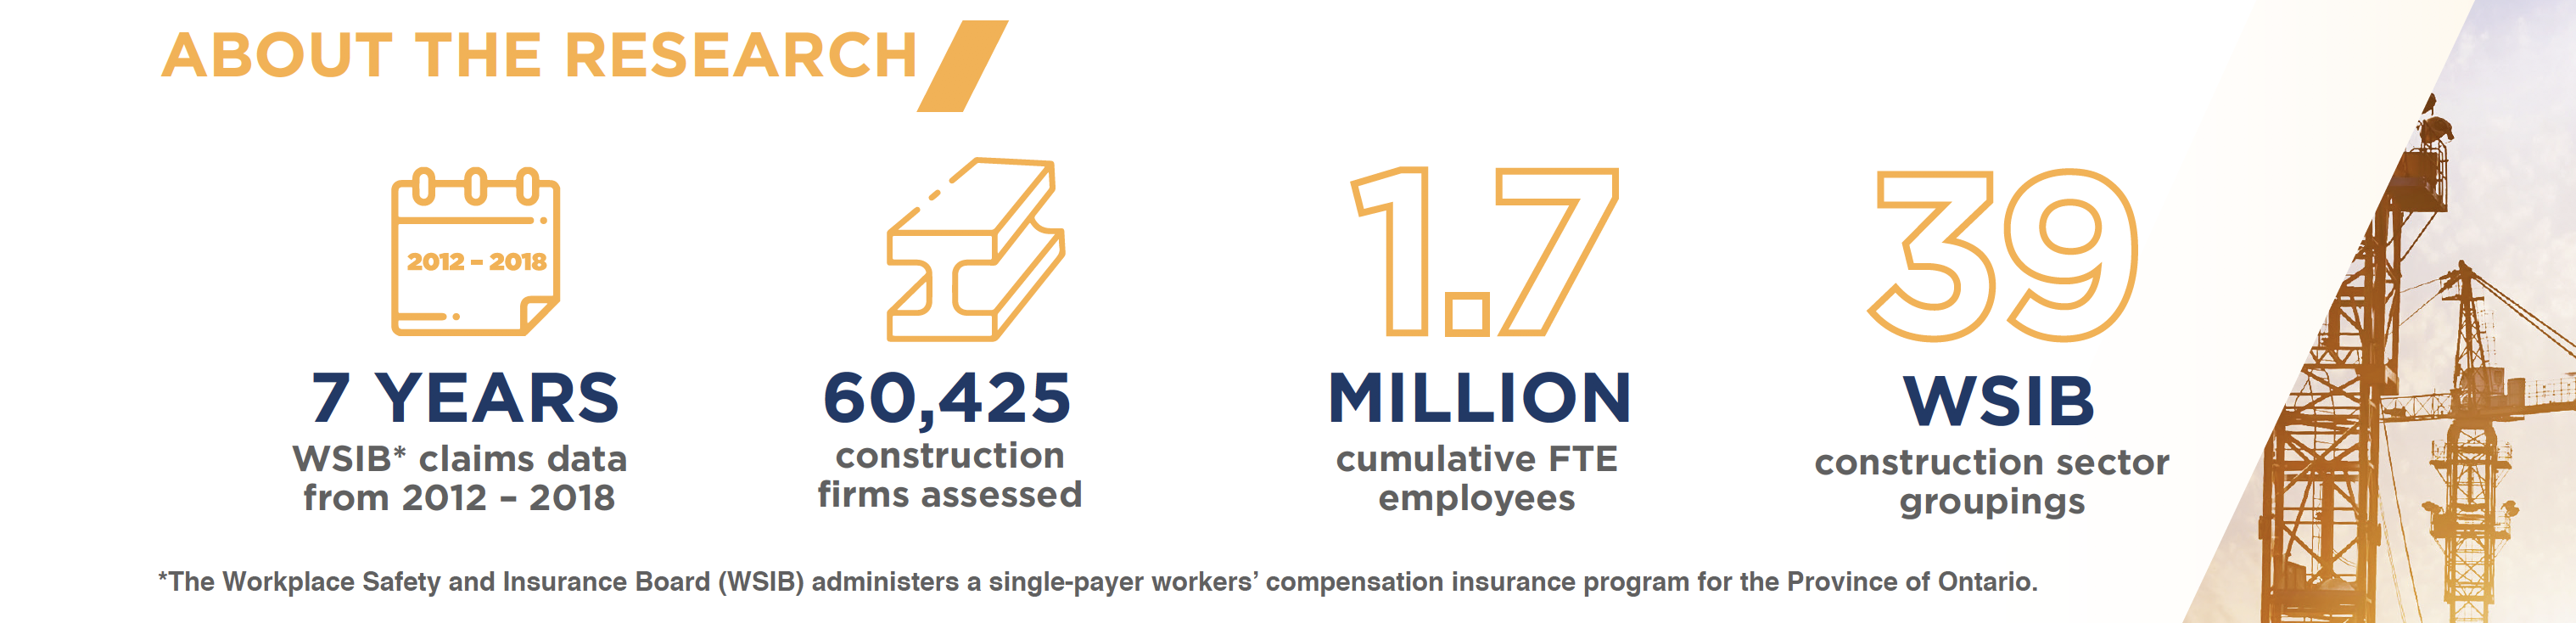 7 years WSIB* claims data from 2012 -2018. 60425 construction firms assessed. 1.7 million cumulative FTE employees. 39 WSIB construction sector groups. The workplace safety and insurance board (WSIB) administers a single-payer workers' compensation insurance program for the province of Ontario